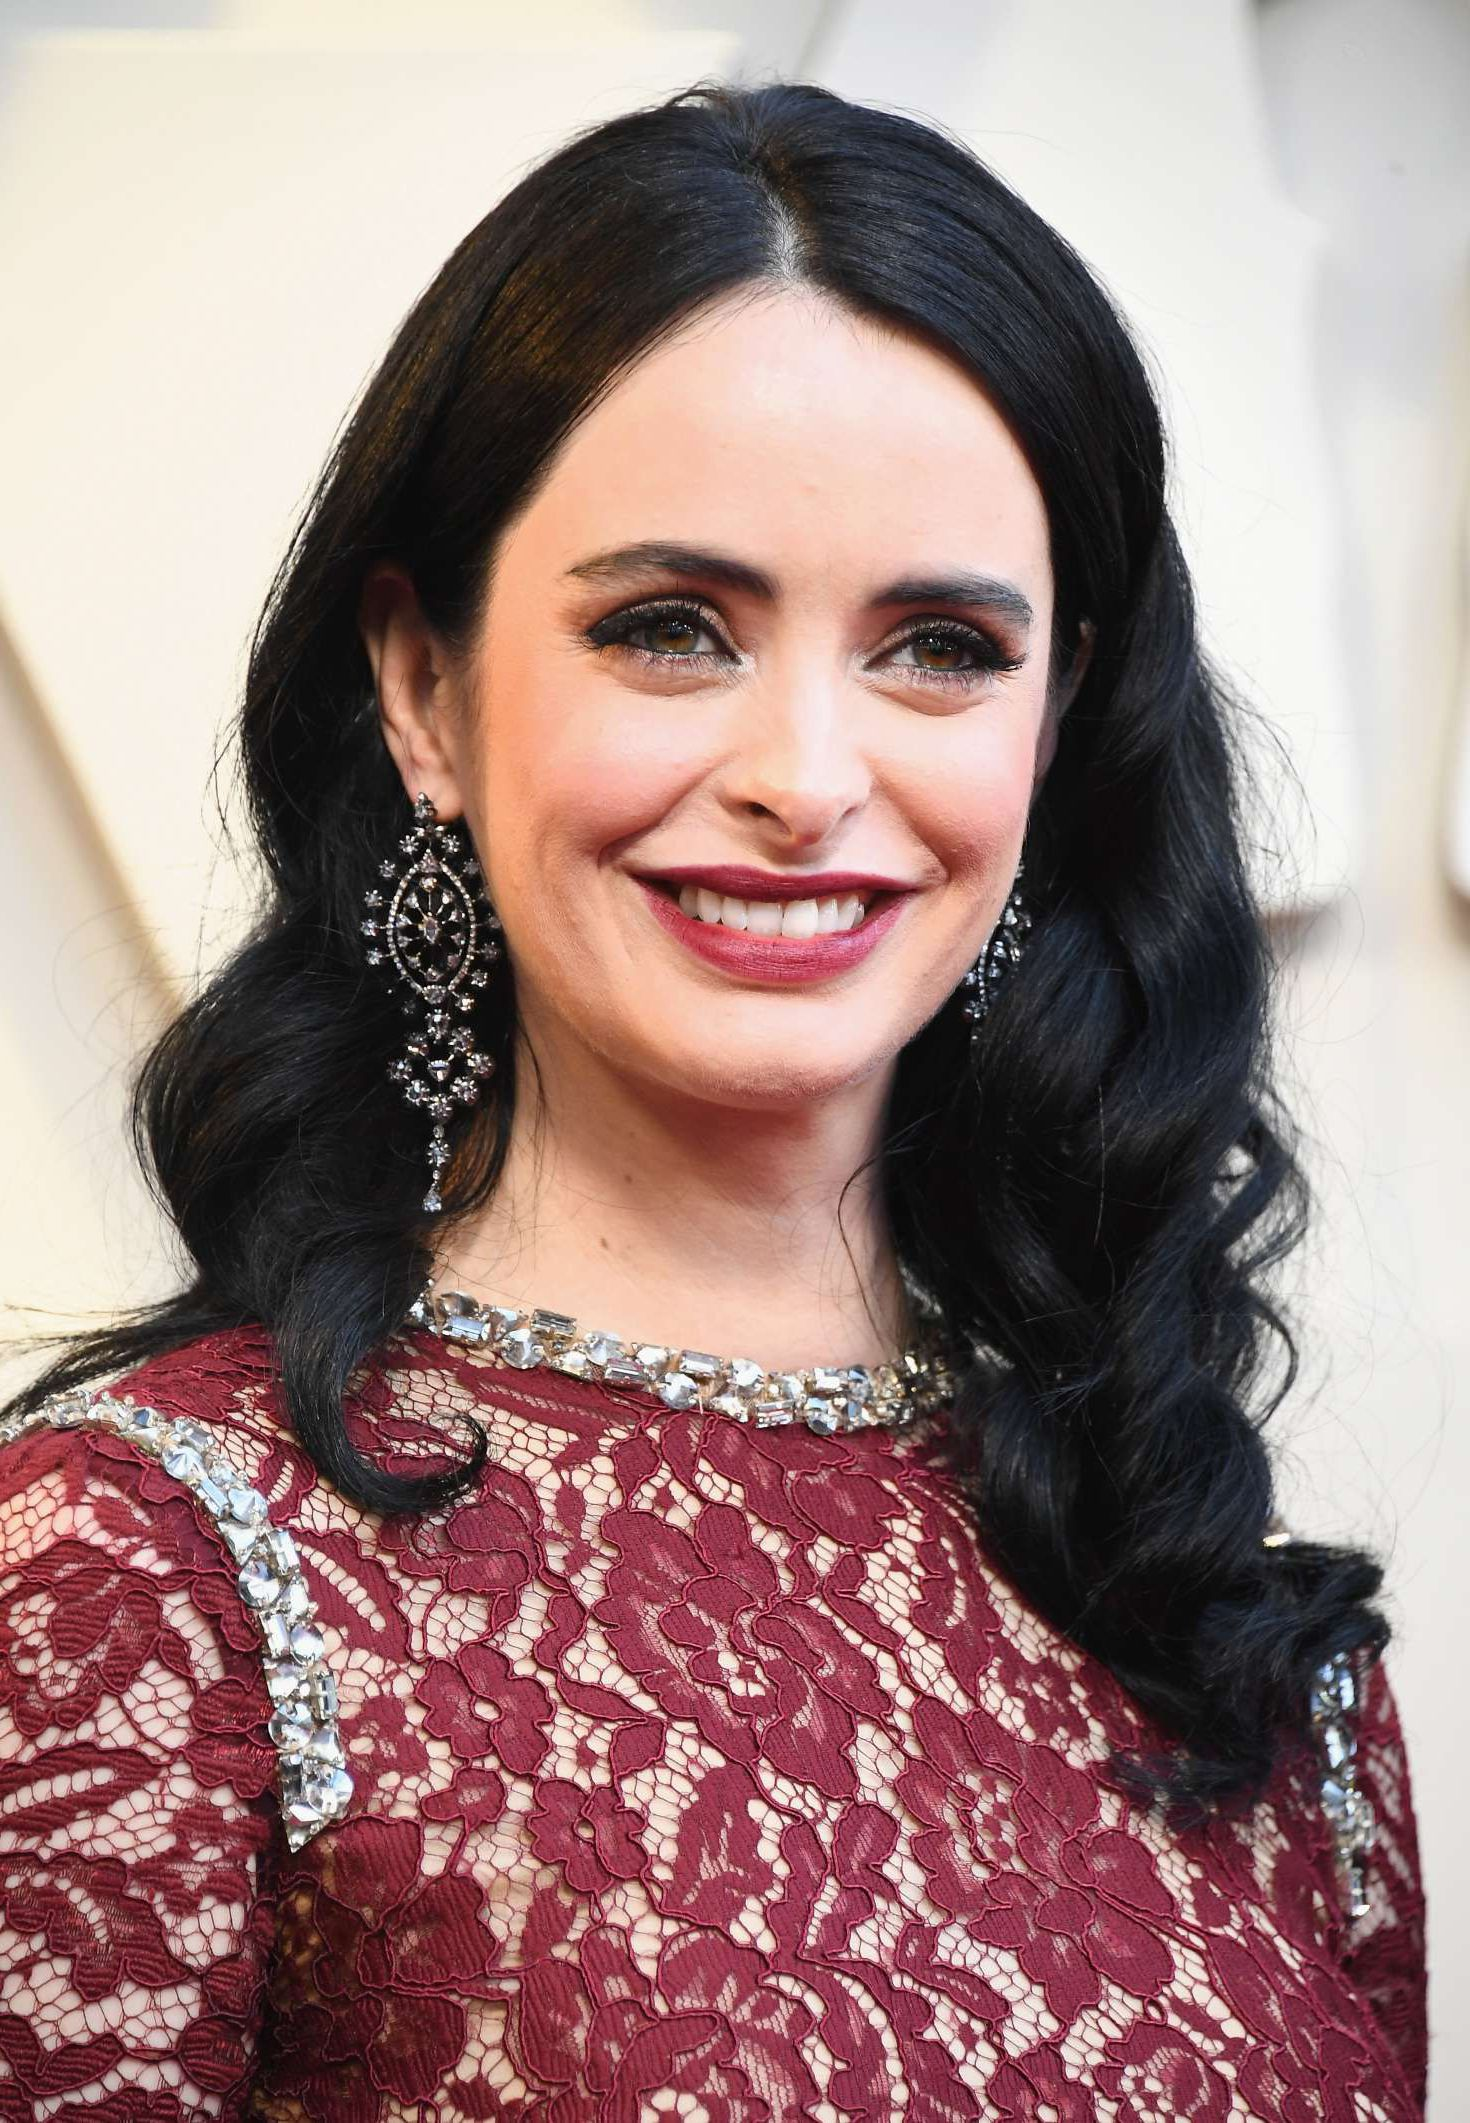 Krysten Ritter at the annual Oscars event in LA, February ...